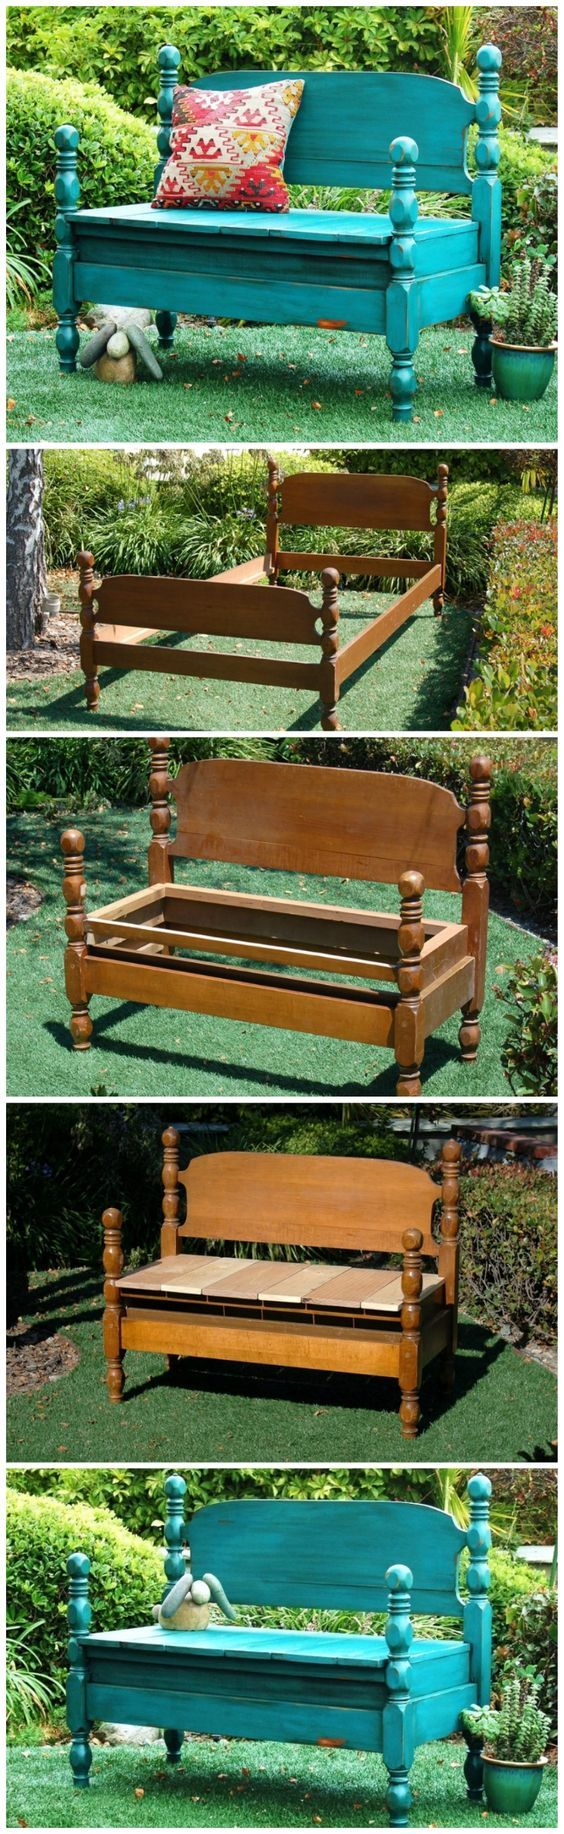 Turn an old bed into a garden bench for an undeniably adorable diy